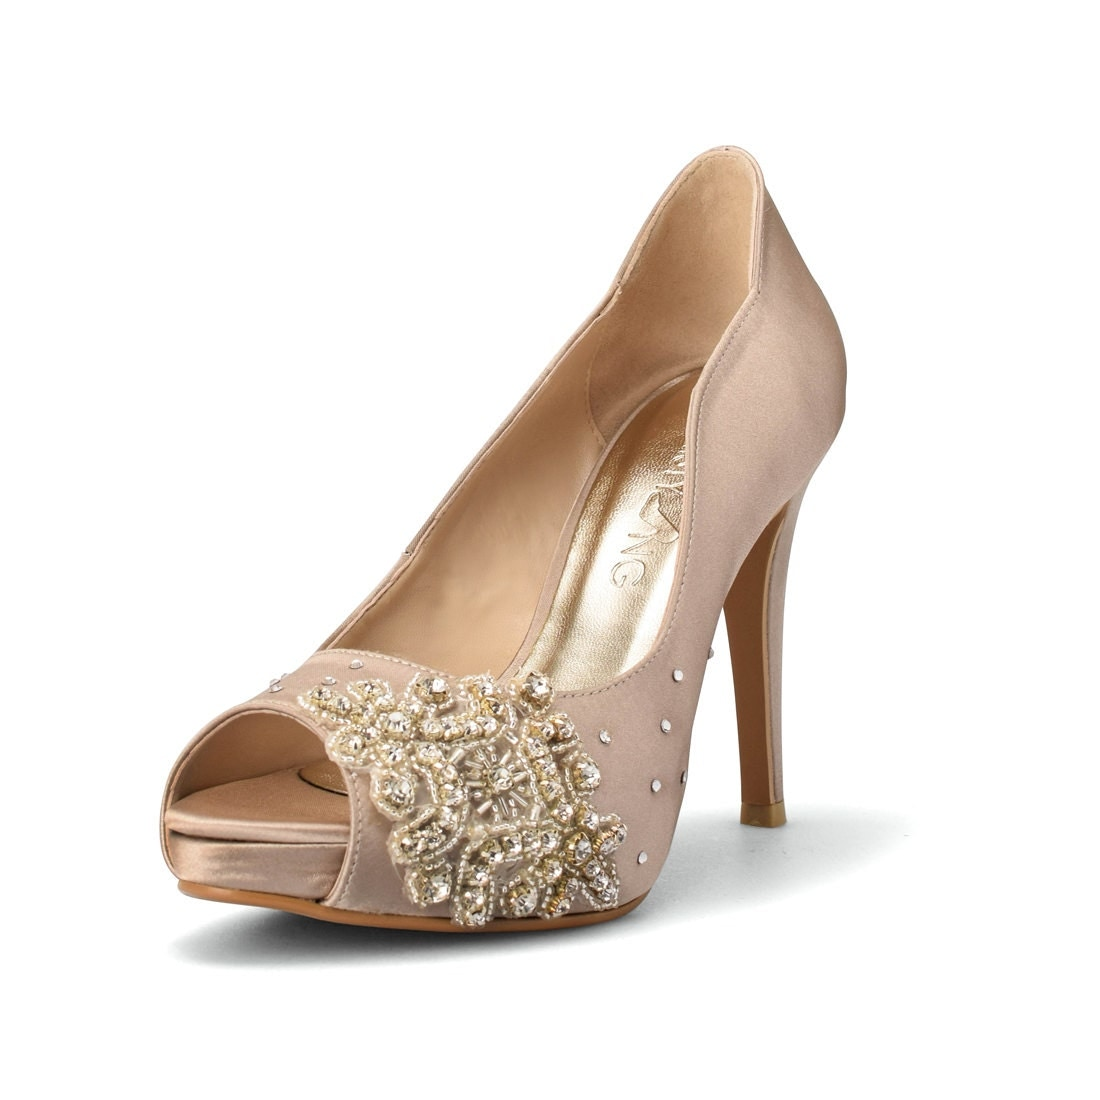 champagne color wedding shoes champagne wedding heels diamante wedding shoes swarovski 2539